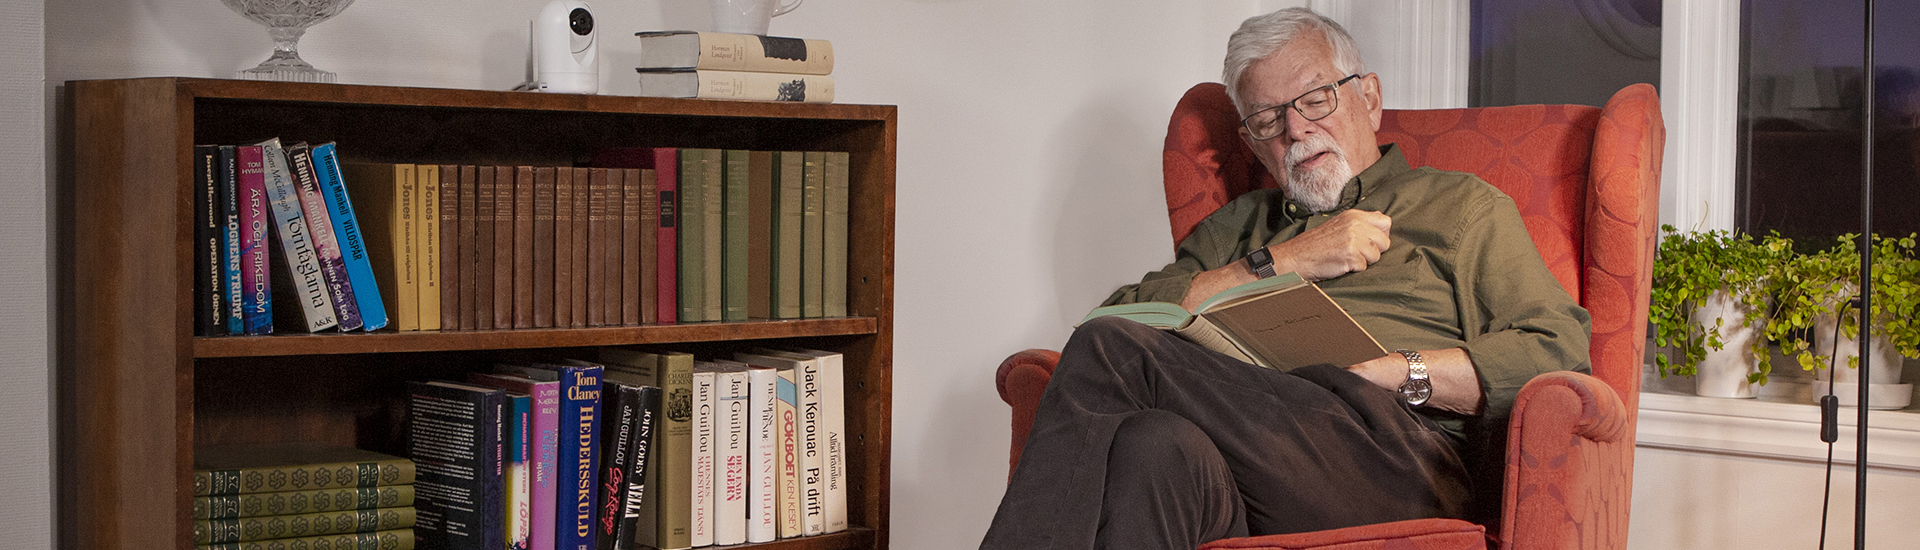 Senior man in armchair reading a book and Doro Visit camera on bookshelf